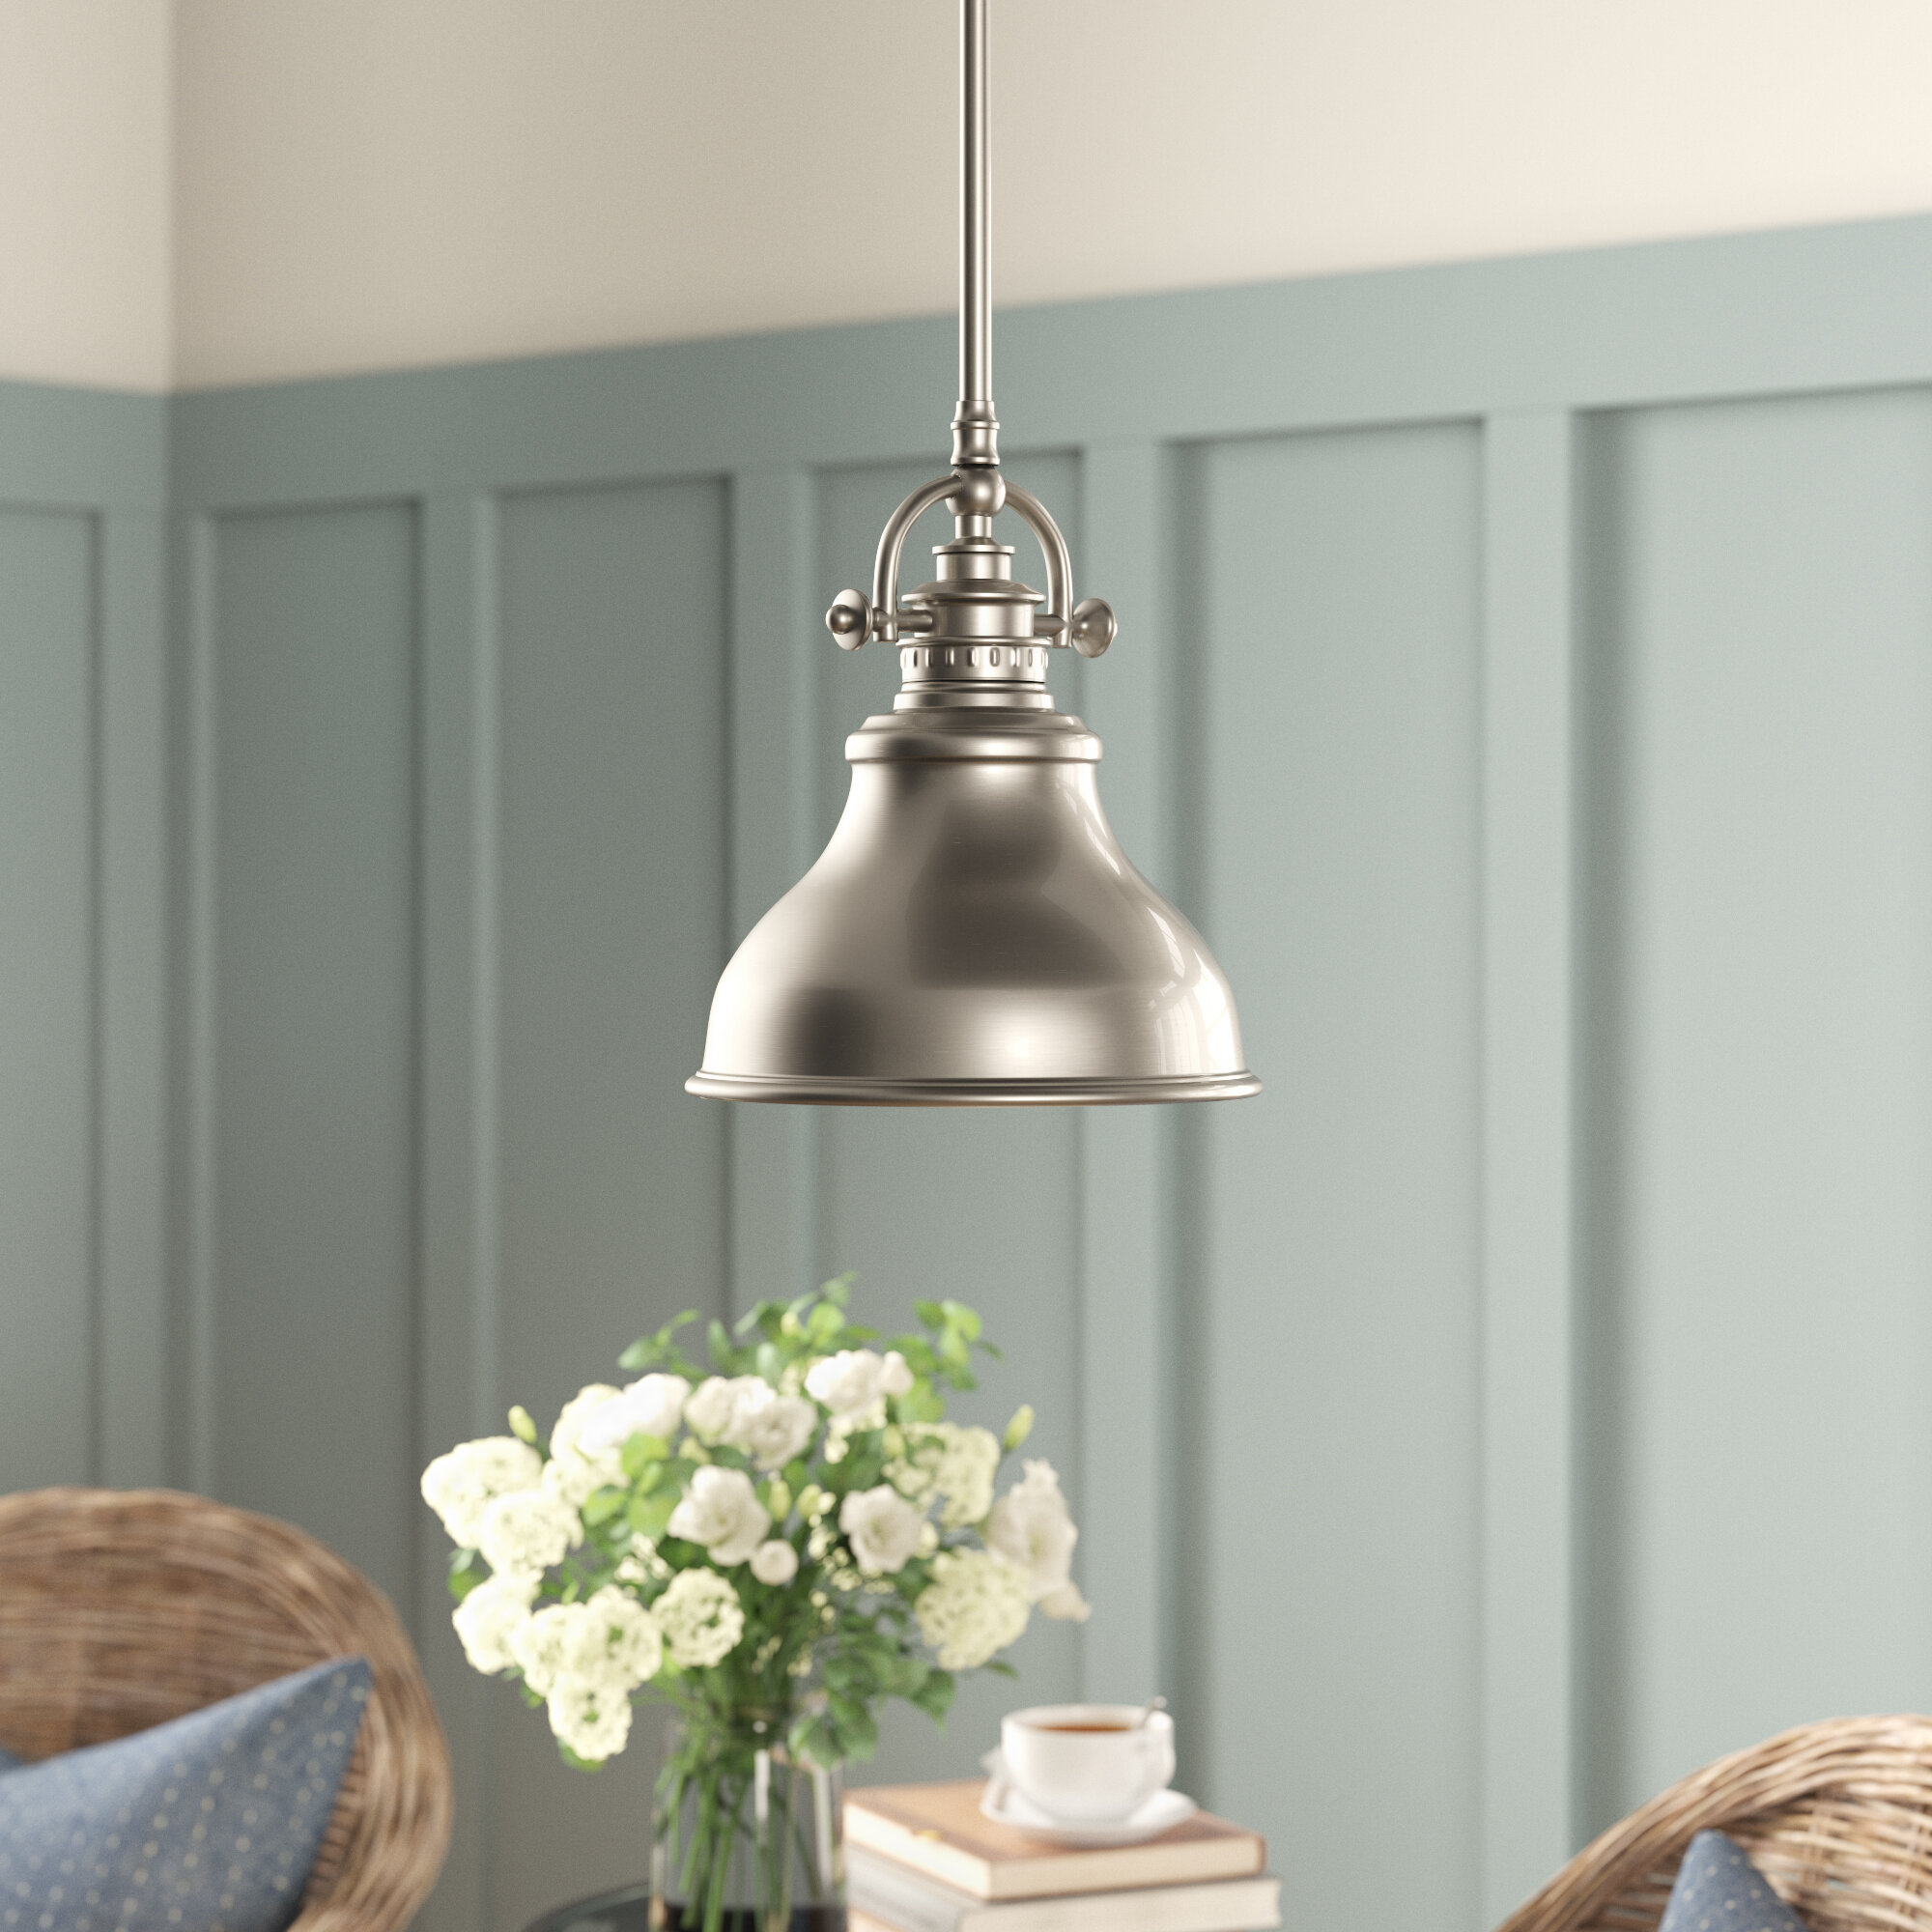 Beachcrest Home Mueller 1-Light Single Dome Pendant with regard to Spokane 1-Light Single Urn Pendants (Image 5 of 30)